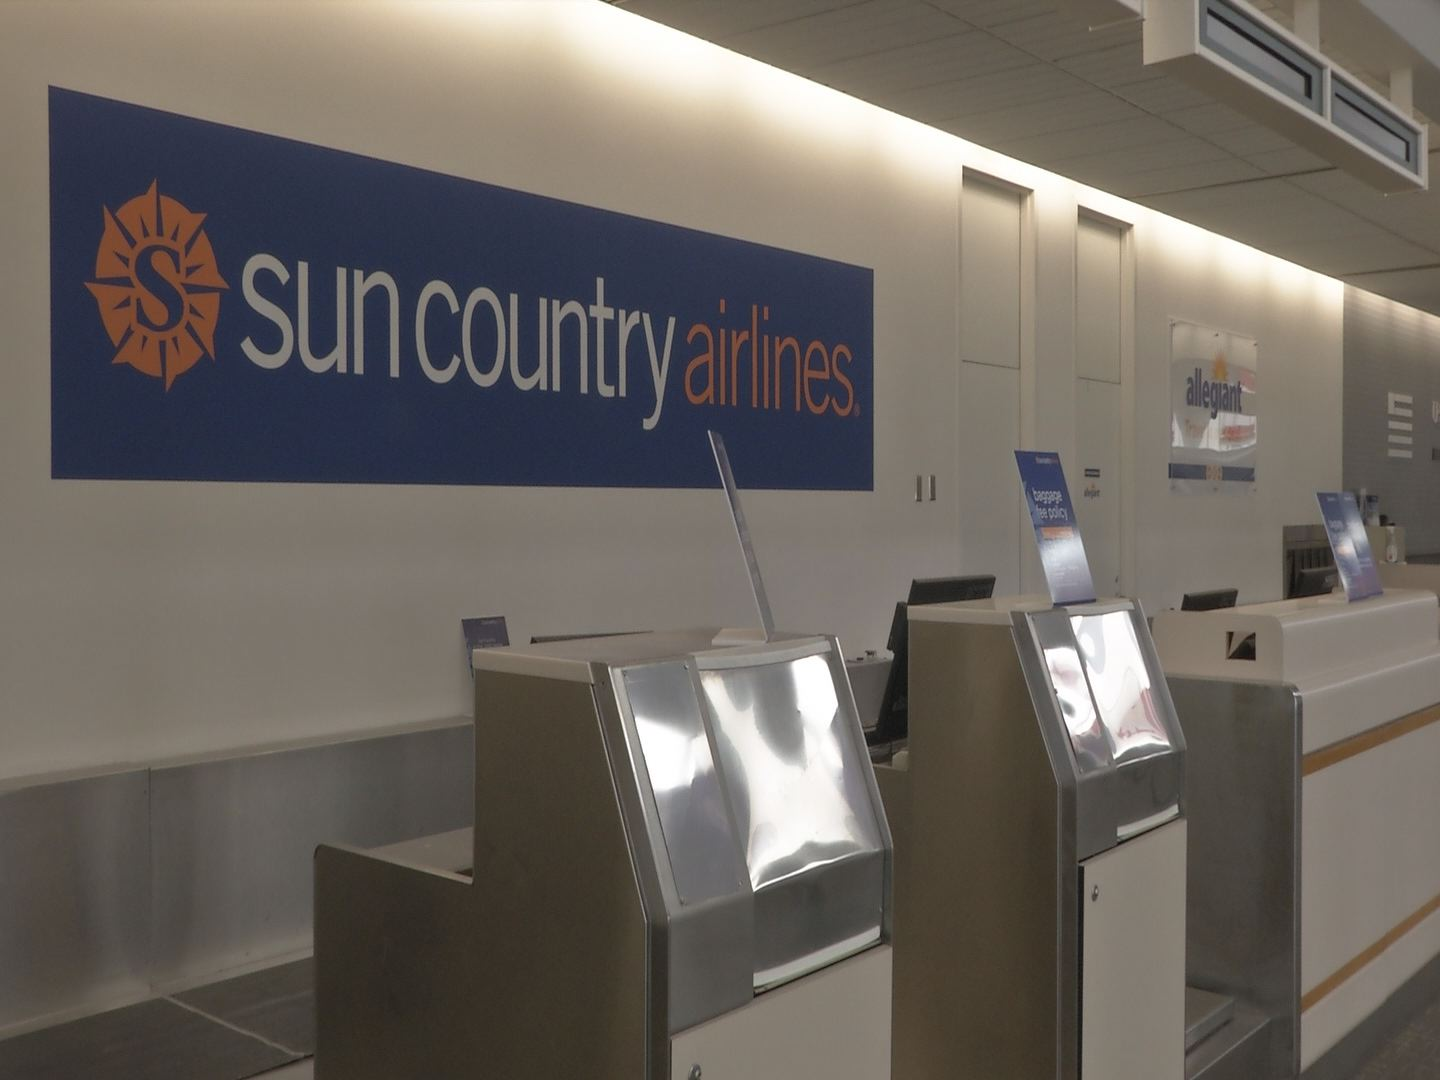 SUN COUNTRY Airlines_36964